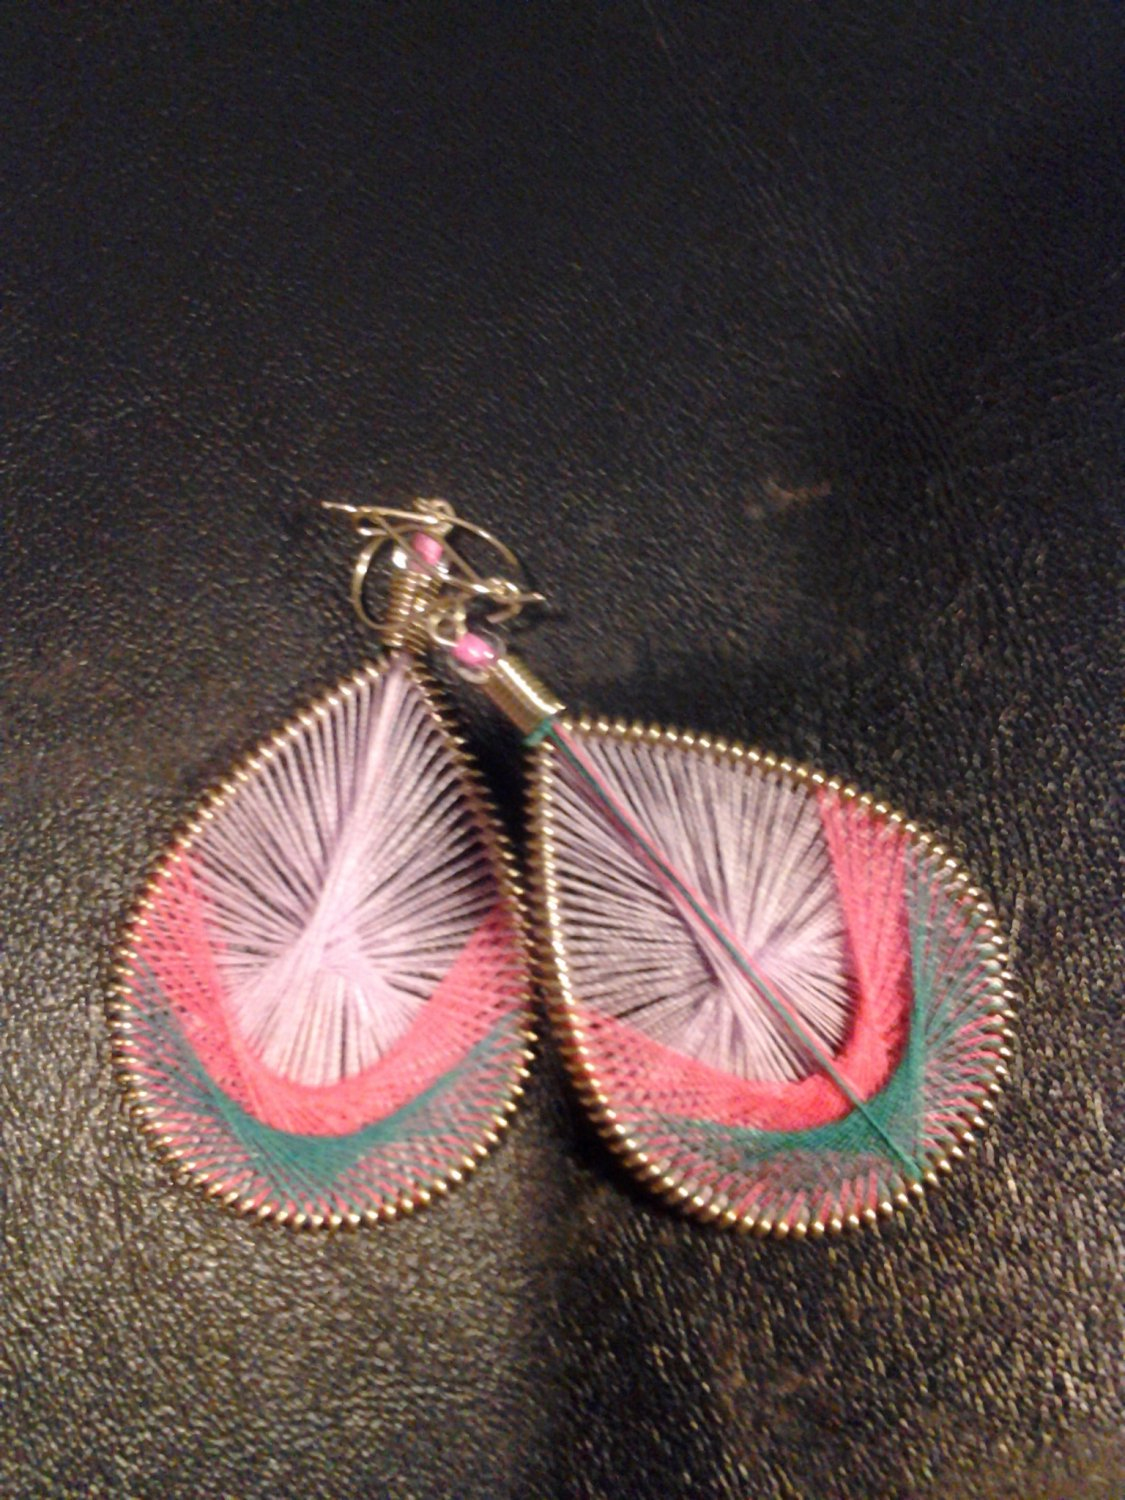 Small Brand New Pink And Green Dangled Thread Earrings